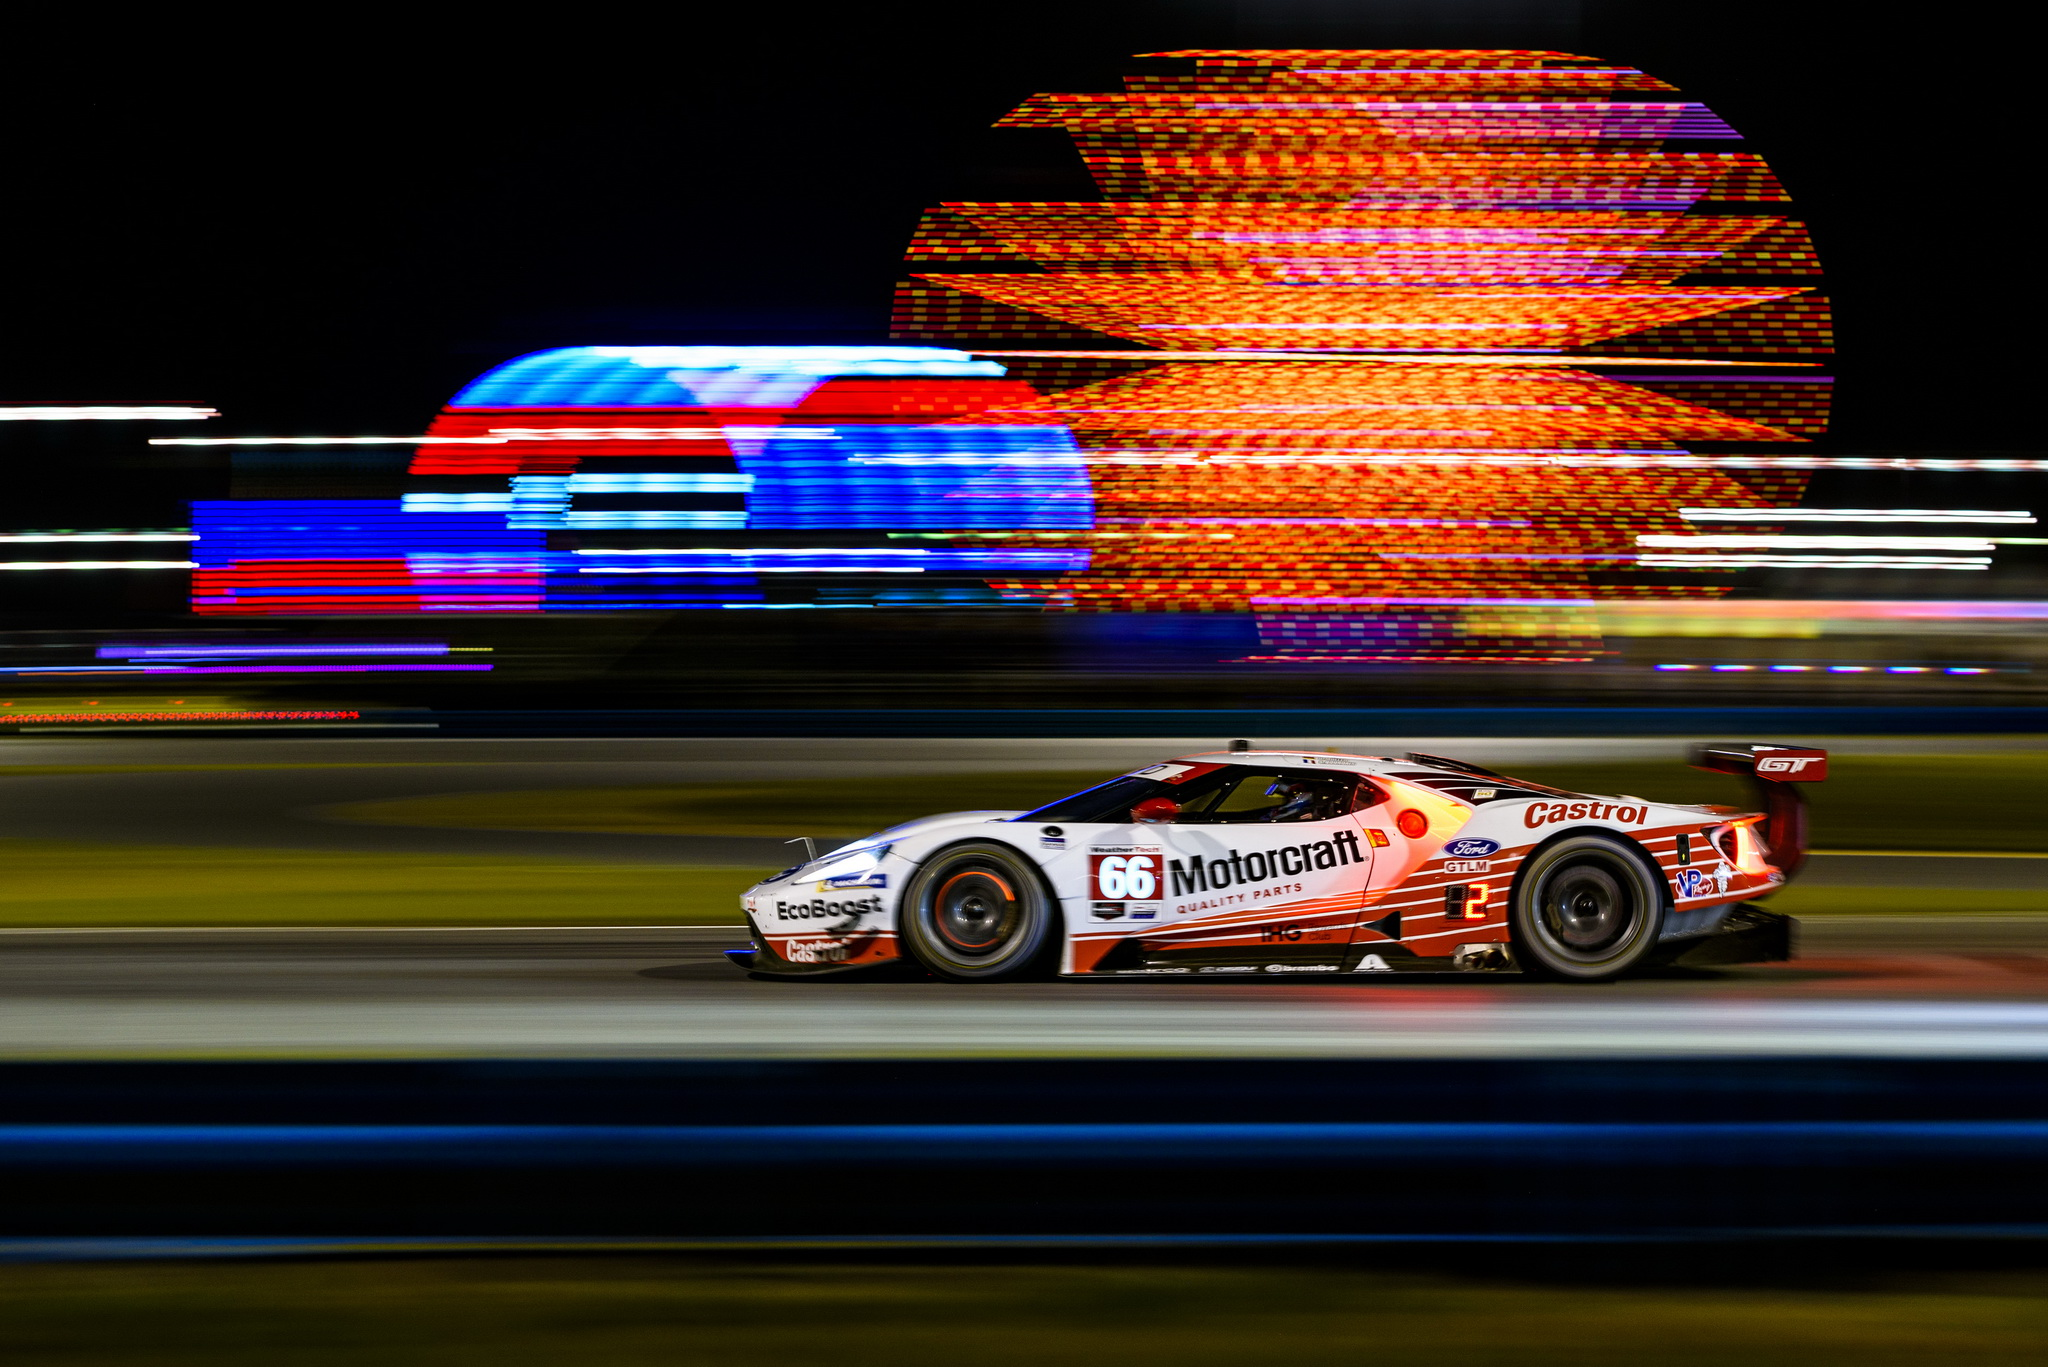 Ford Chip Ganassi Racing Overcomes Five Lap Deficit To Nearly Capture Third Consecutive Win